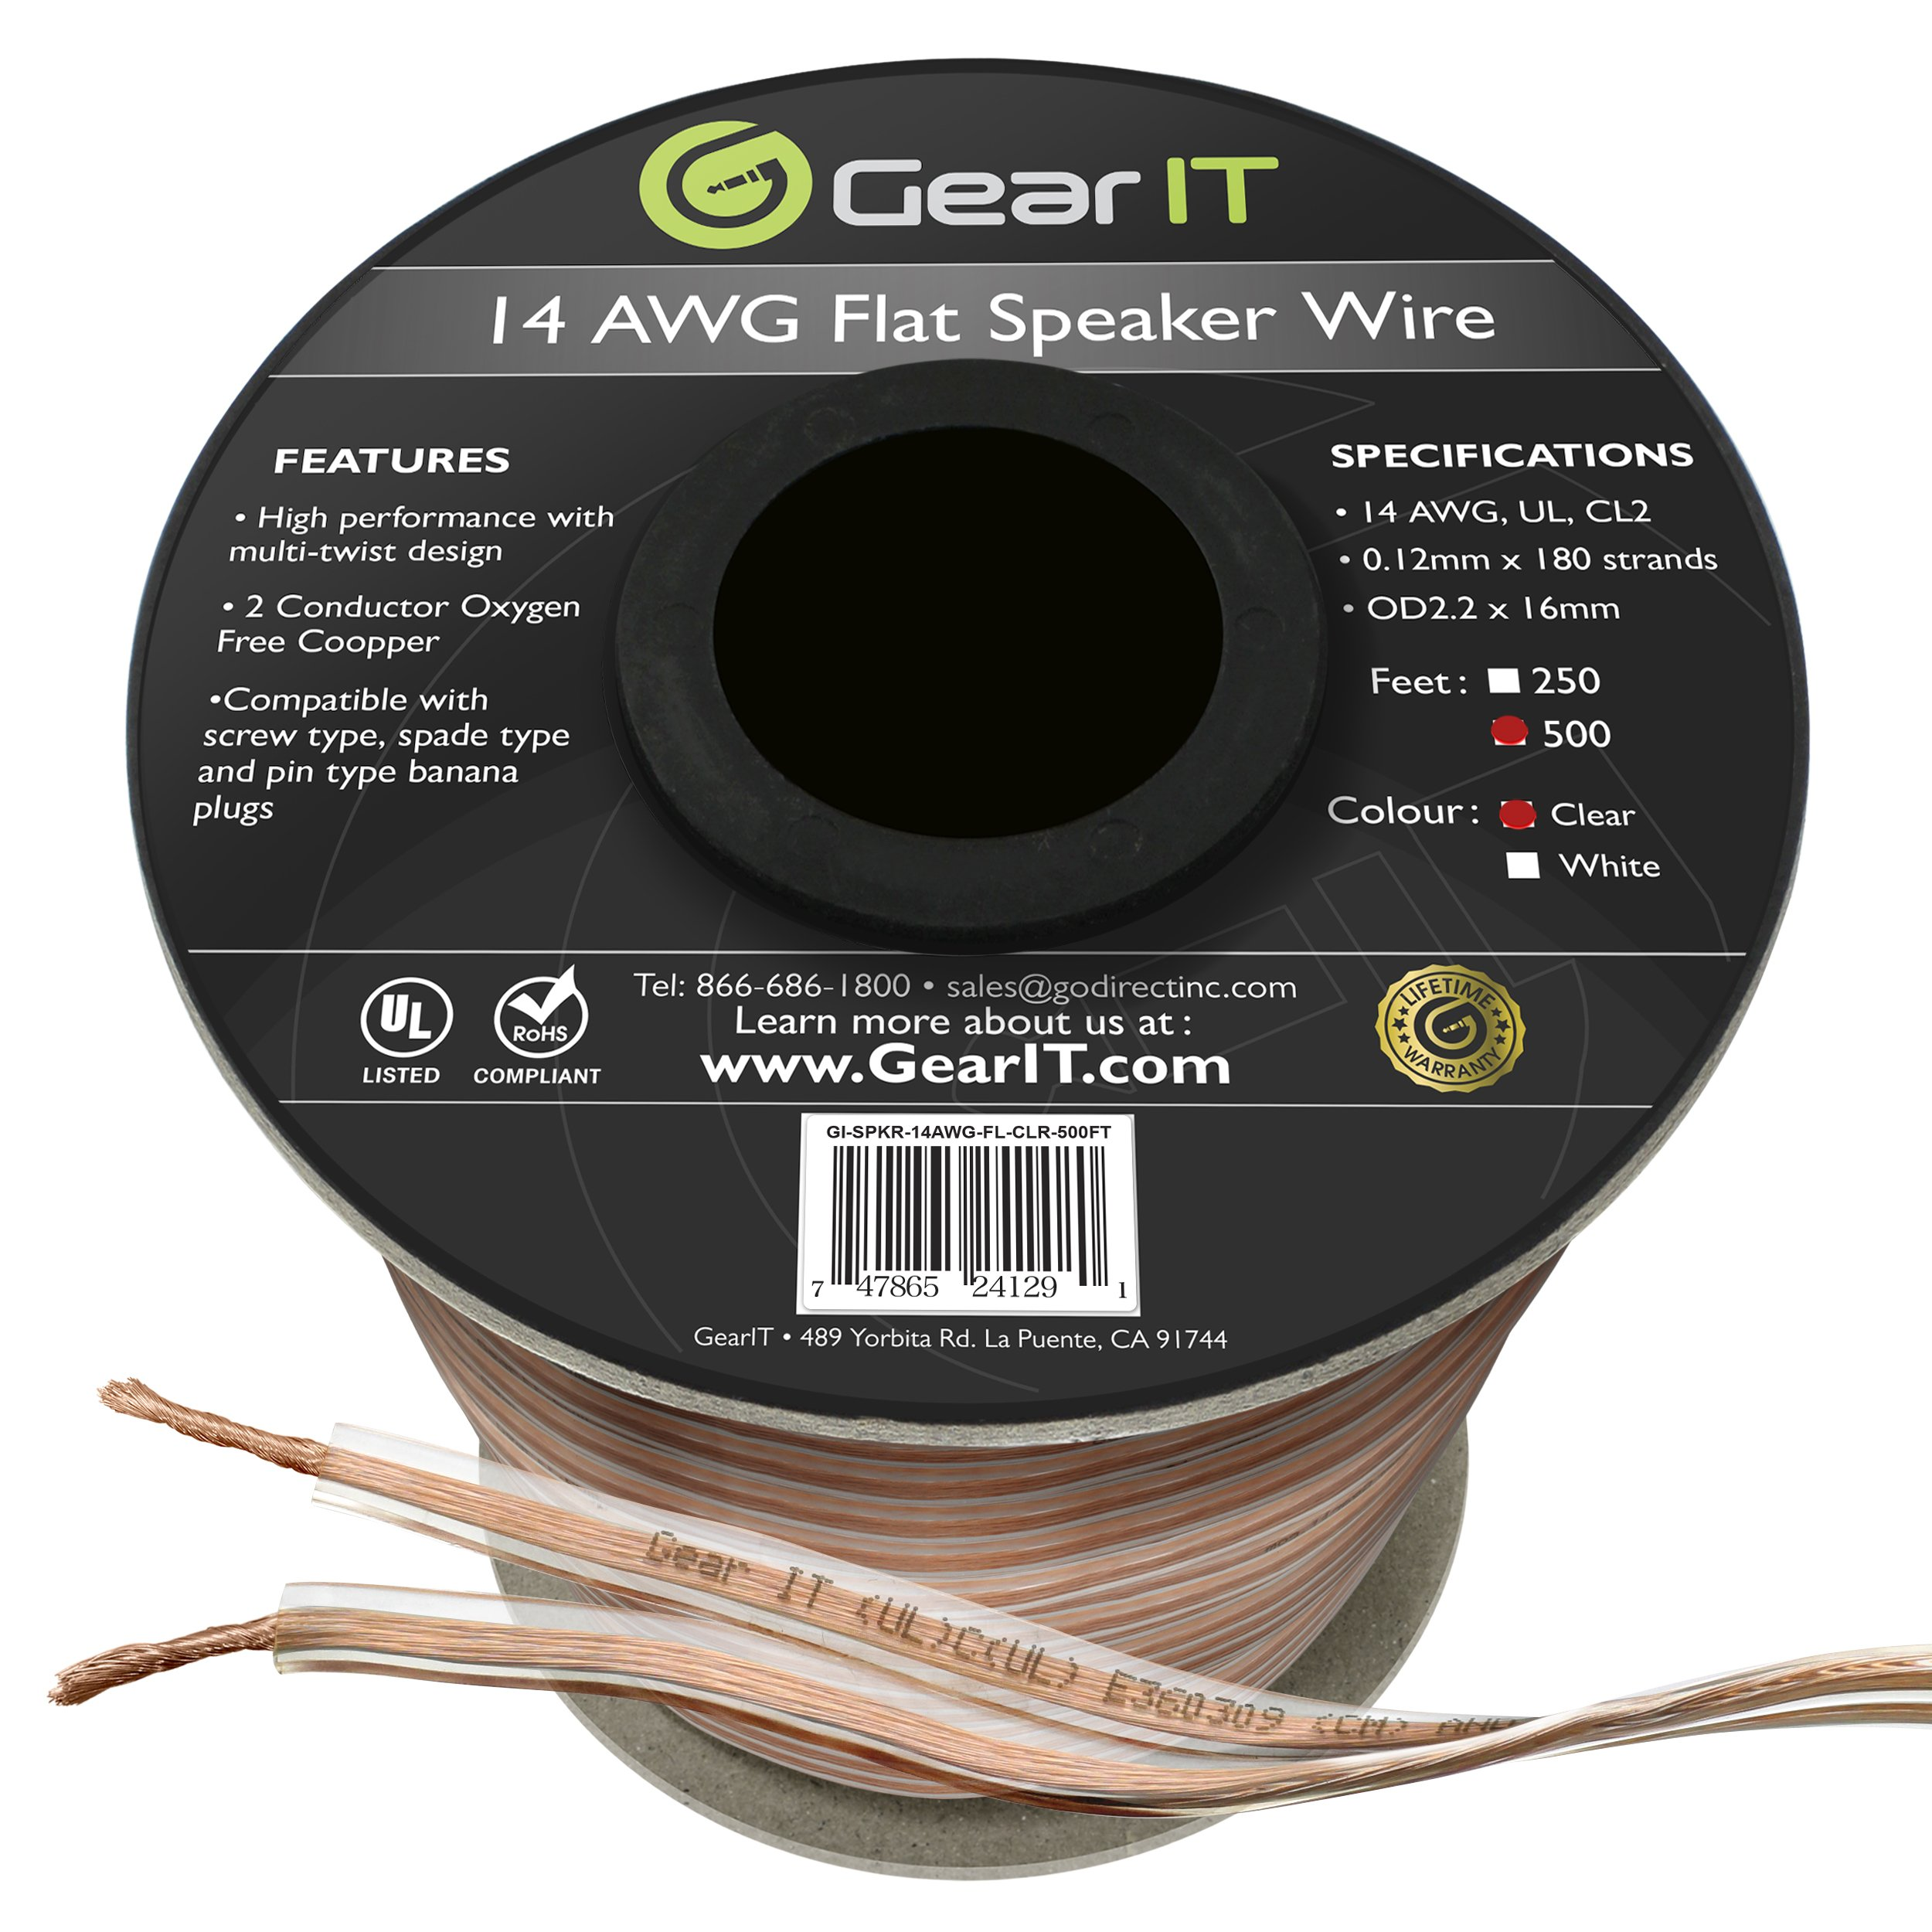 GearIT Elite Series 14AWG Flat Speaker Wire (500 Feet / 152 Meters) - Oxygen Free Copper (OFC) CL2 Rated In-Wall Installation for Home Theater, Car Audio, and Outdoor Use, Clear by GearIT